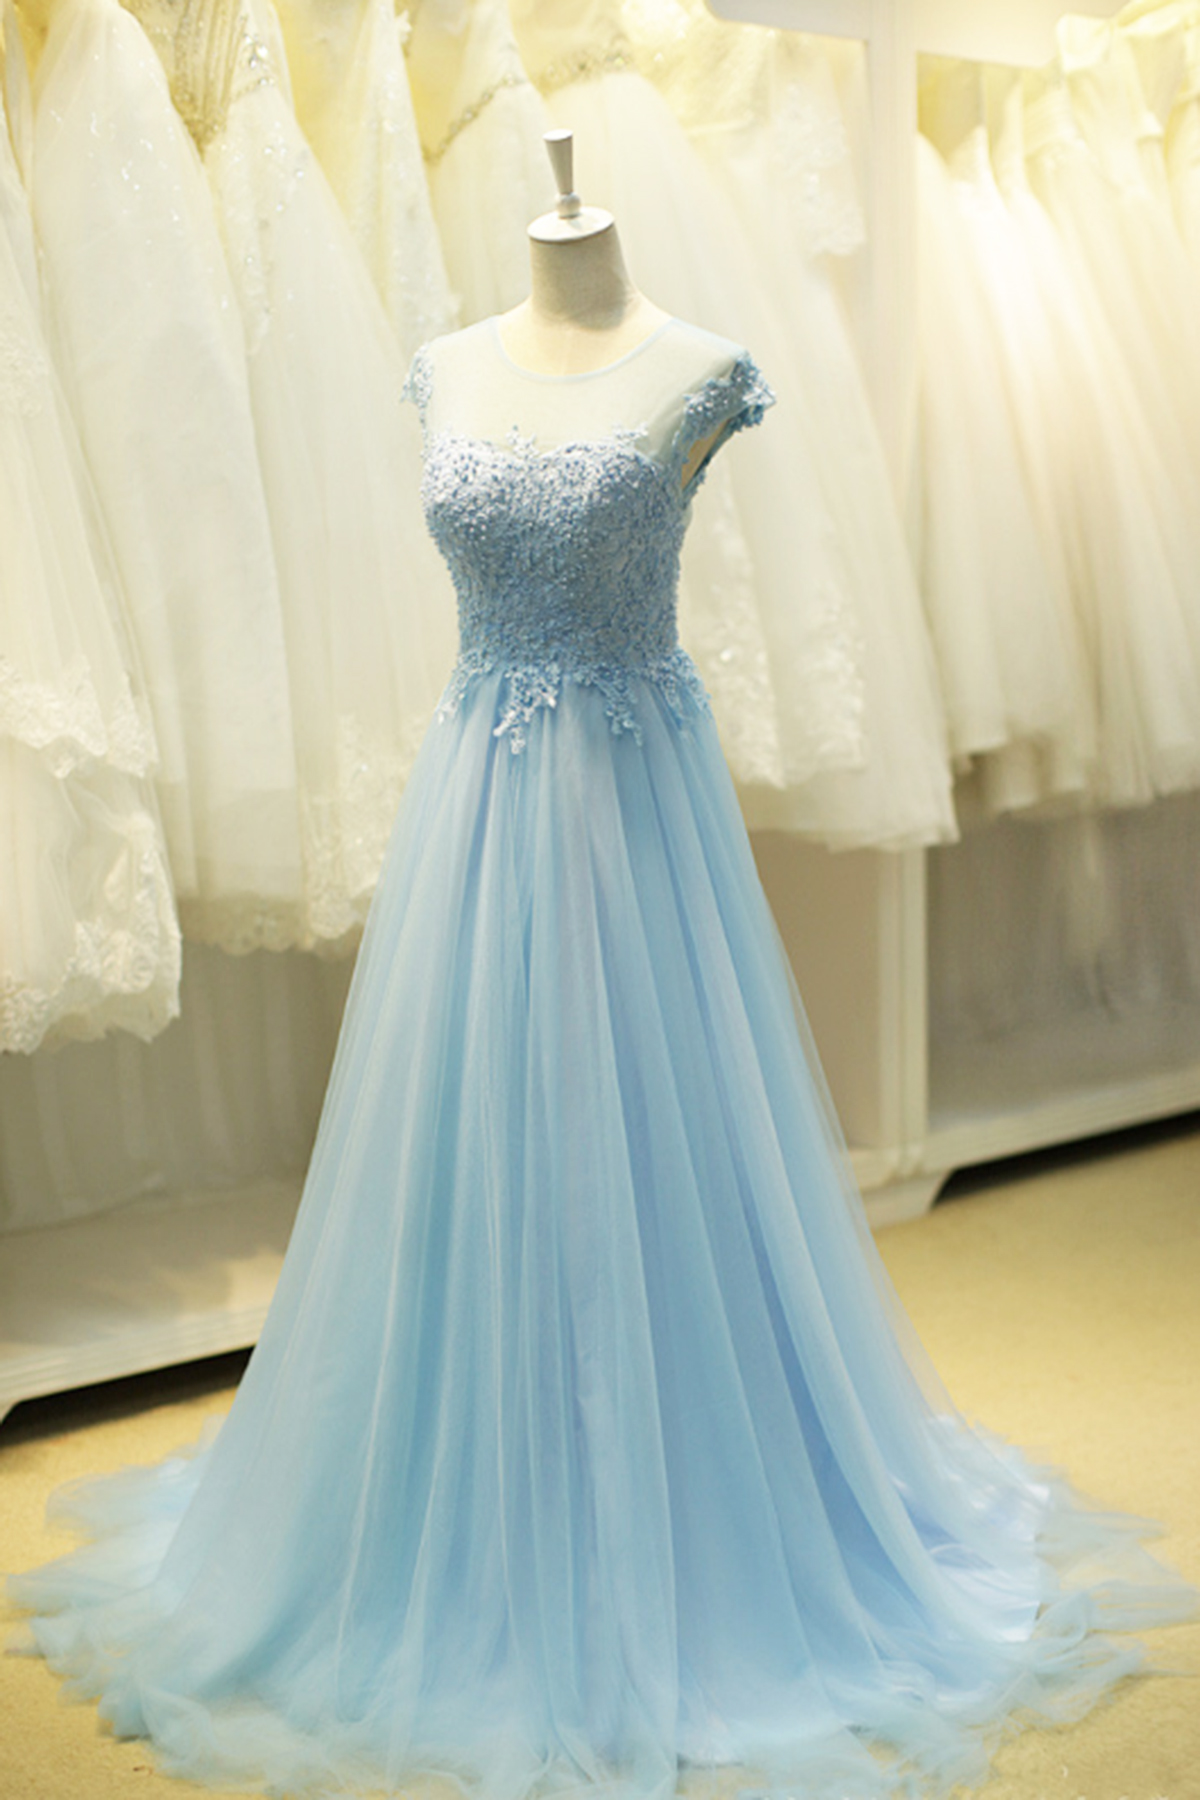 d6cf847d68c Cute blue tulle round neckline beaded sweet16 prom dress with cap sleeves